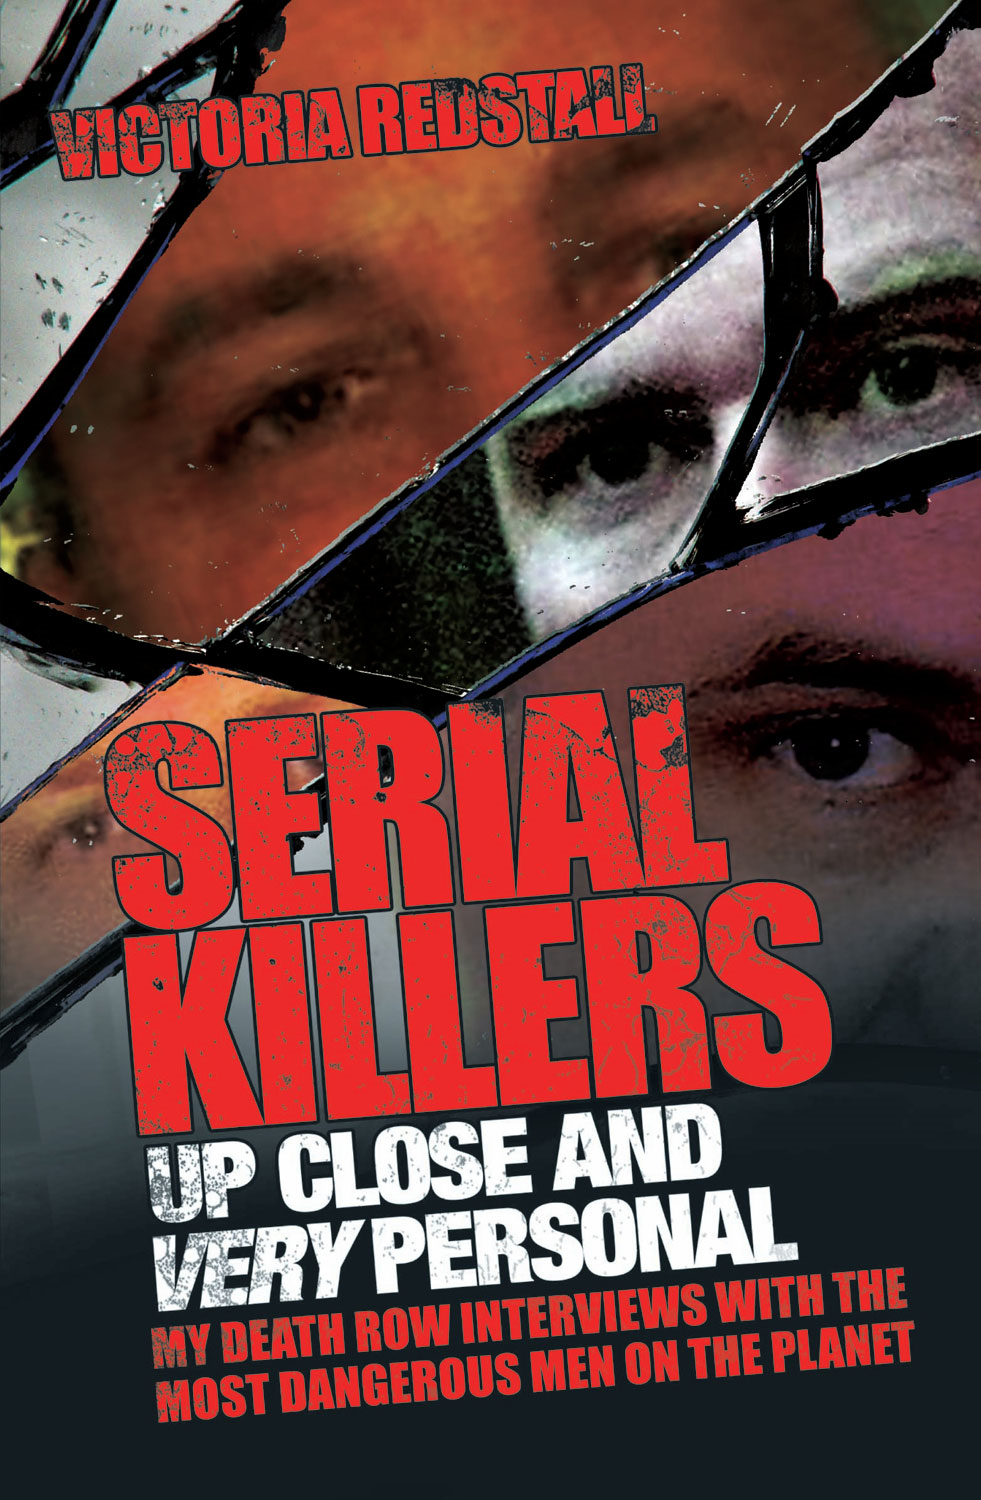 Serial Killers Up Close and Very Personal By: Victoria Redstall